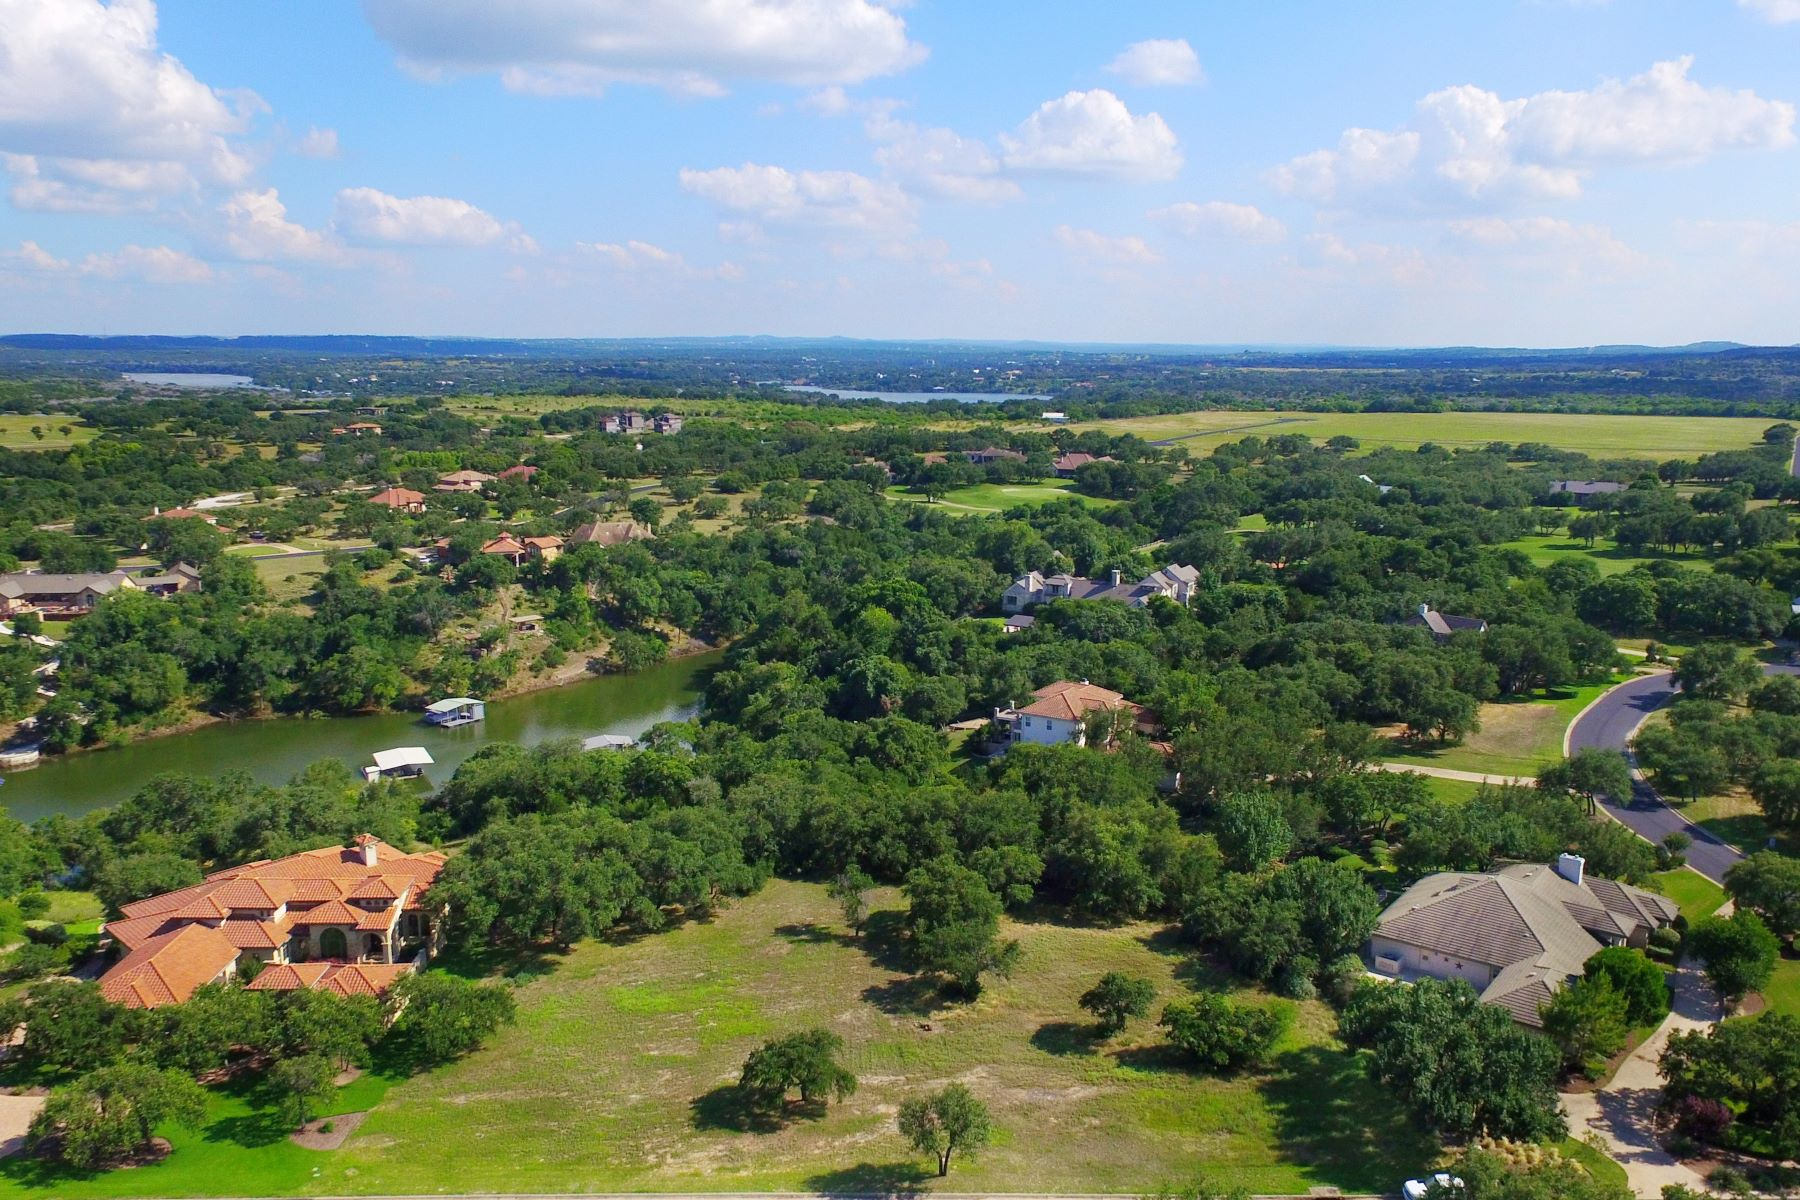 Terreno por un Venta en The Perfect Land for the Perfect Home 26205 Countryside Dr Spicewood, Texas 78669 Estados Unidos